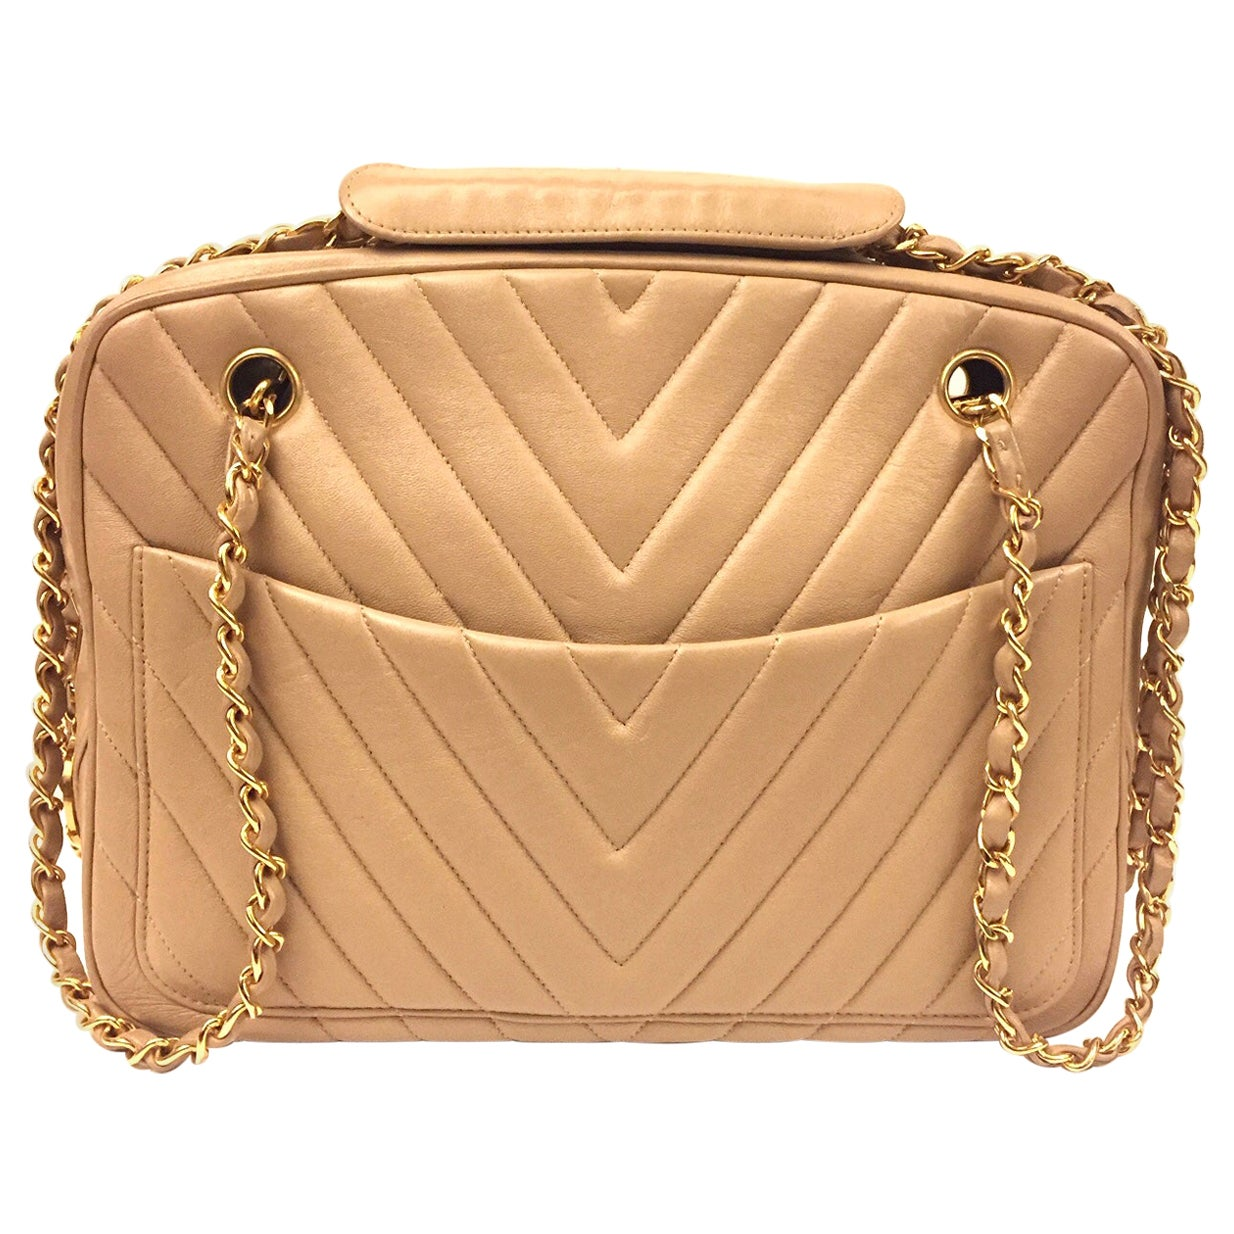 Chanel beige chevron shoulder bag